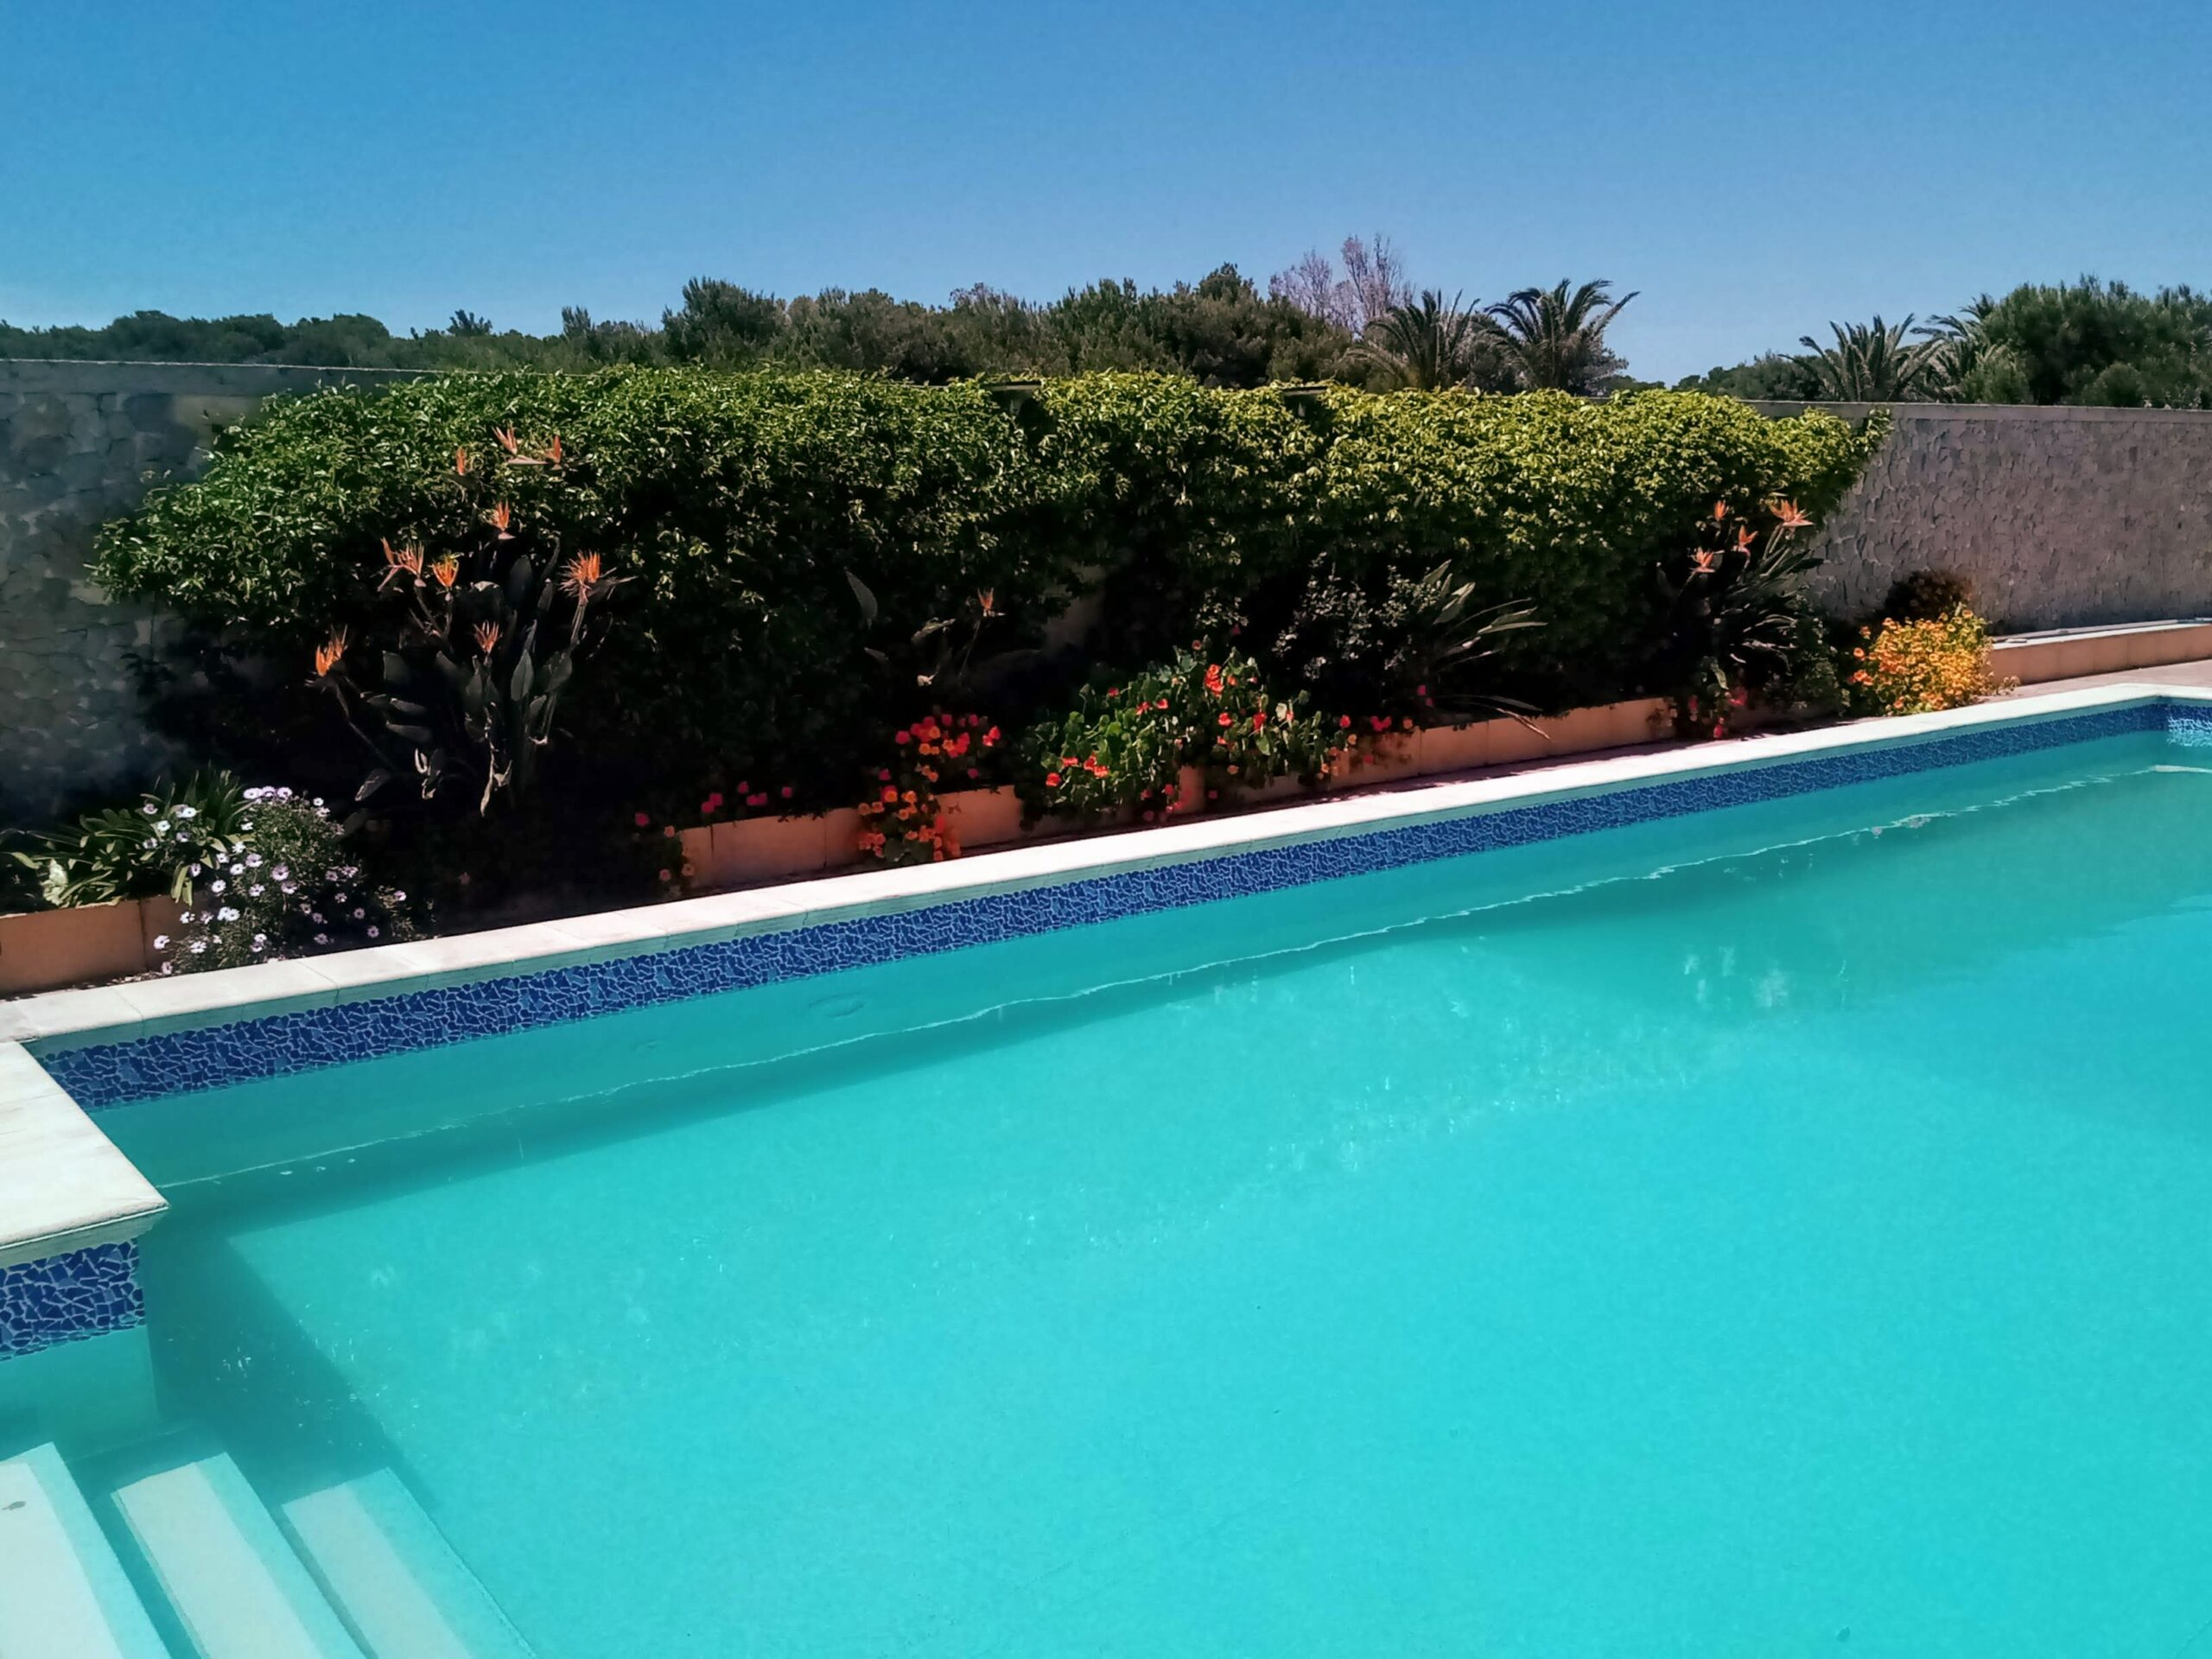 Holiday rentals with pool, near the seaside, Salento, Puglia, Italy